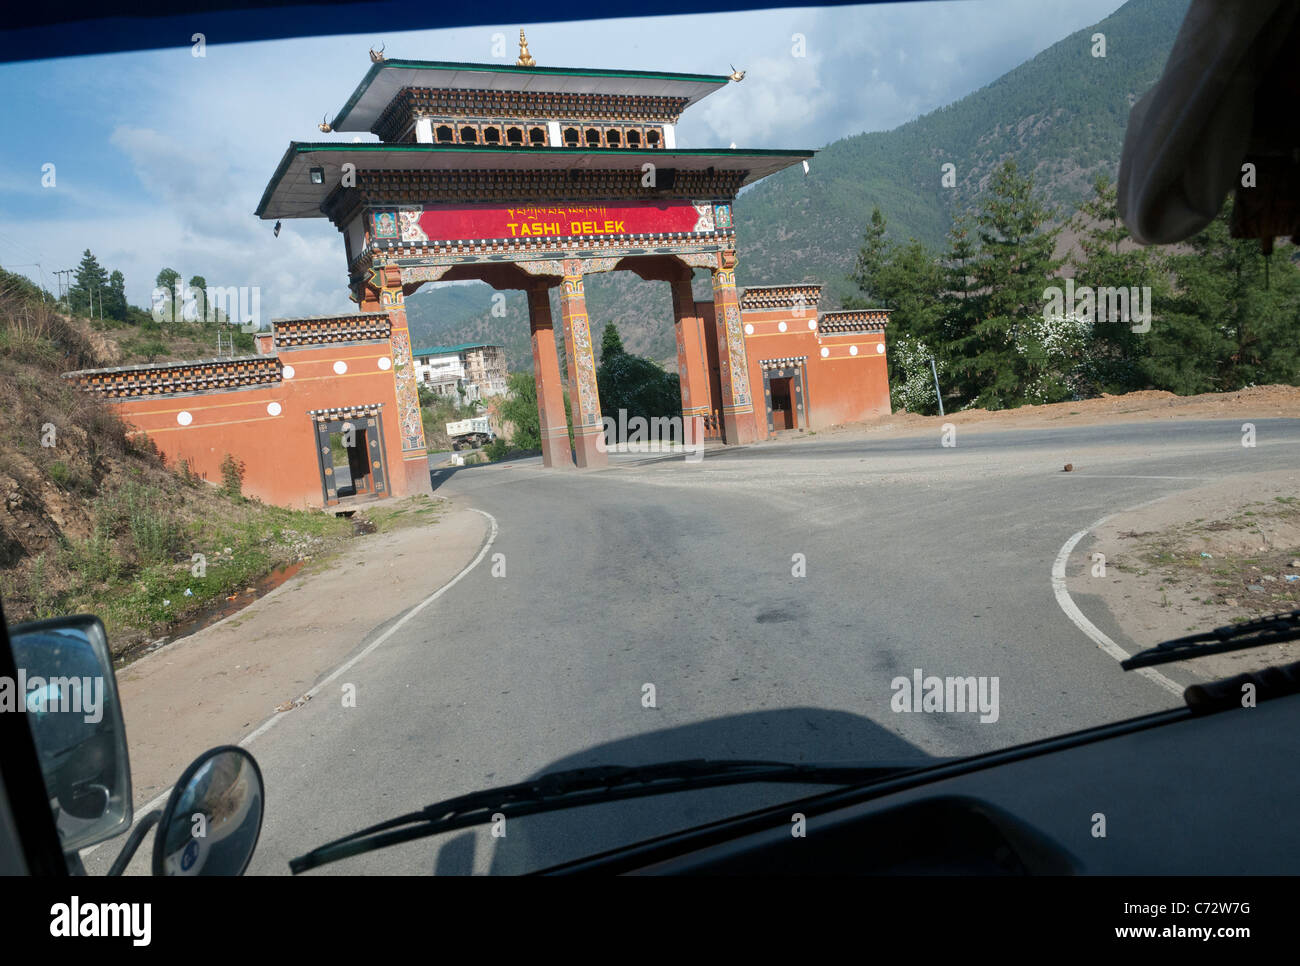 on the road to Phuentsholing from Thimpu. Bhutan - Stock Image